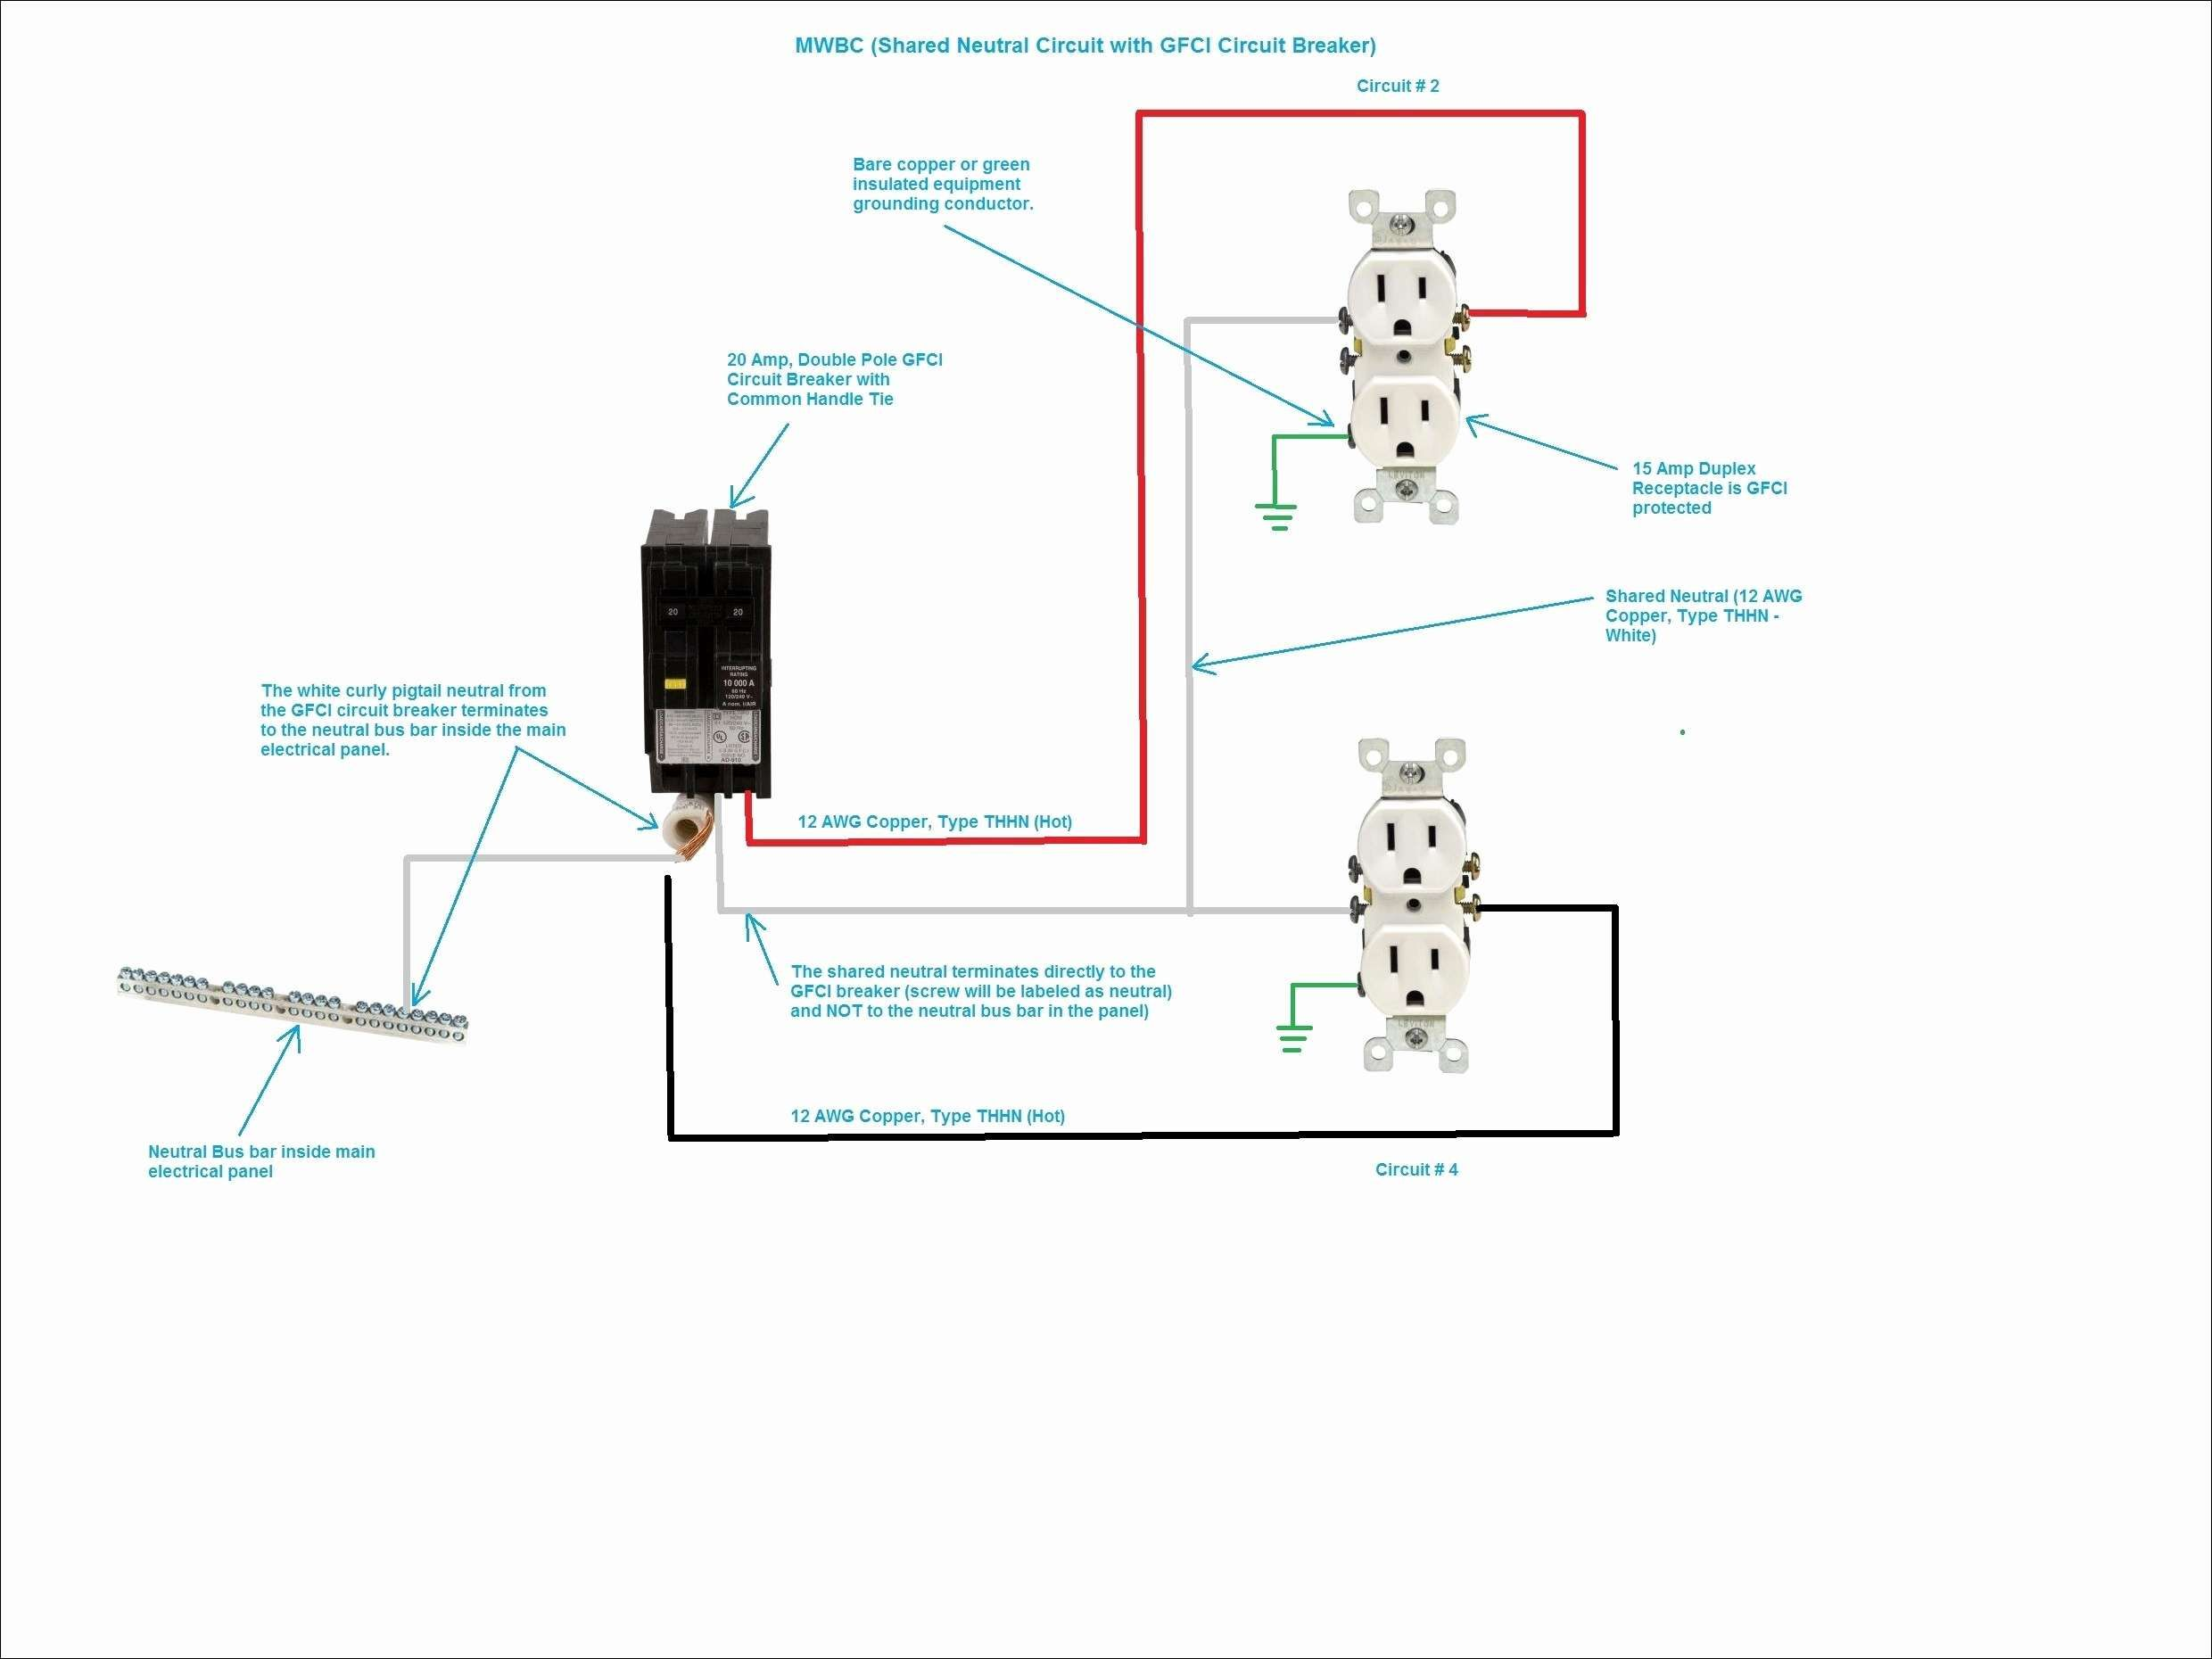 wiring diagram outlets beautiful wiring diagram outlets splendid line wiring diagram help signalsbrake light code for [ 2480 x 1860 Pixel ]